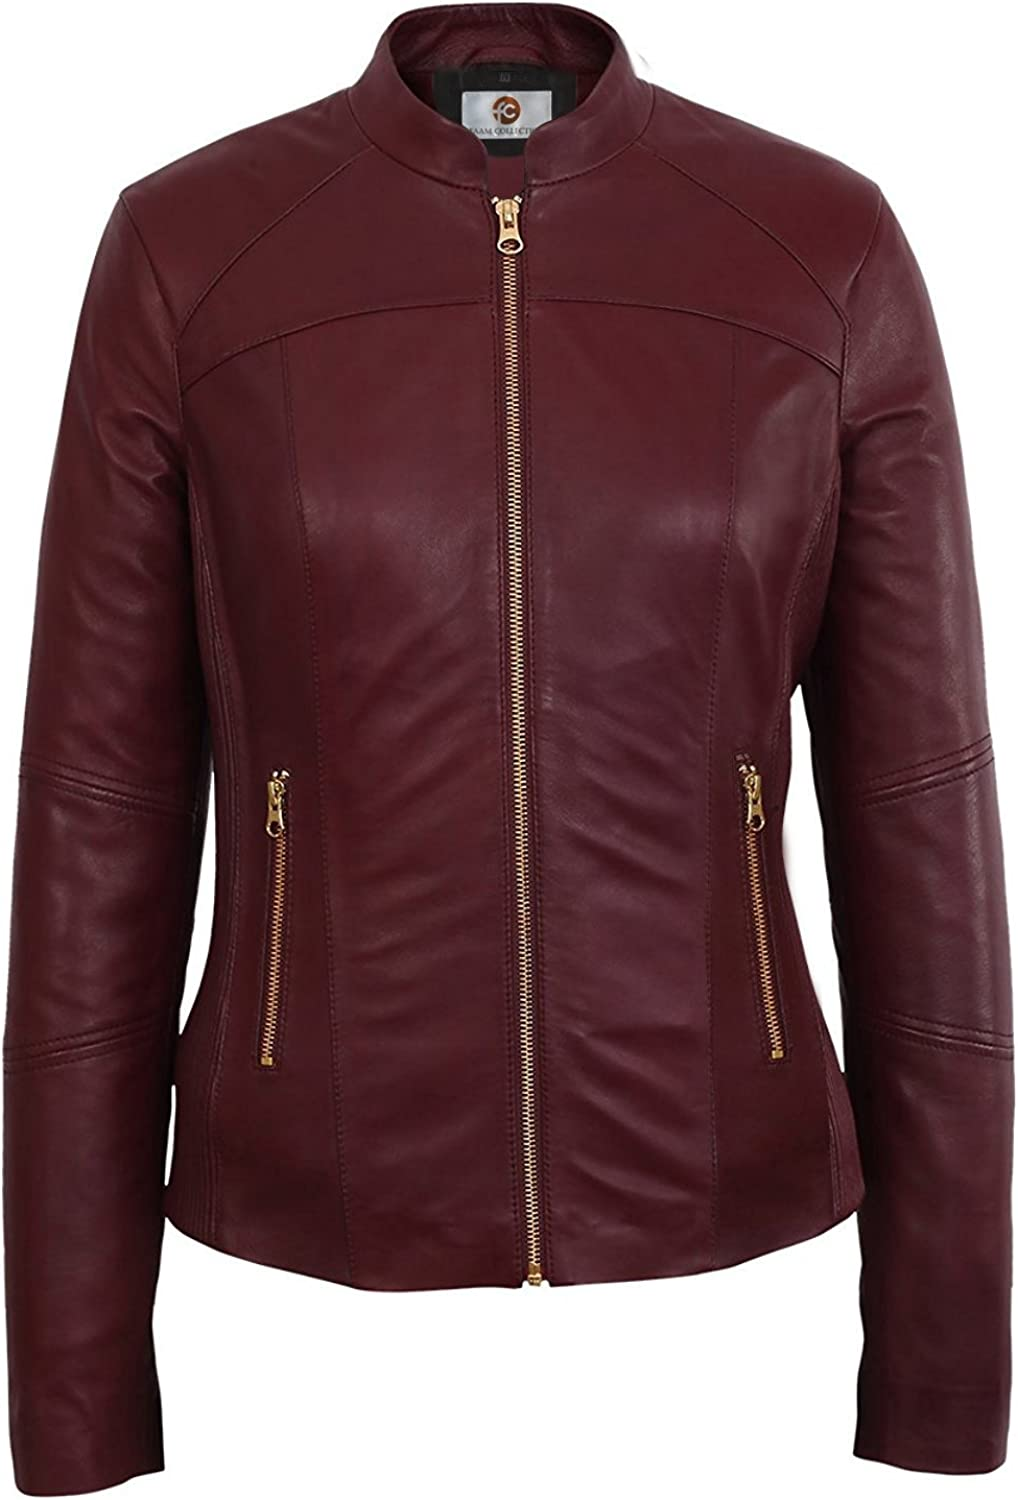 Faam Collection Beautiful Burgundy Party Faux Leather Jacket for Women